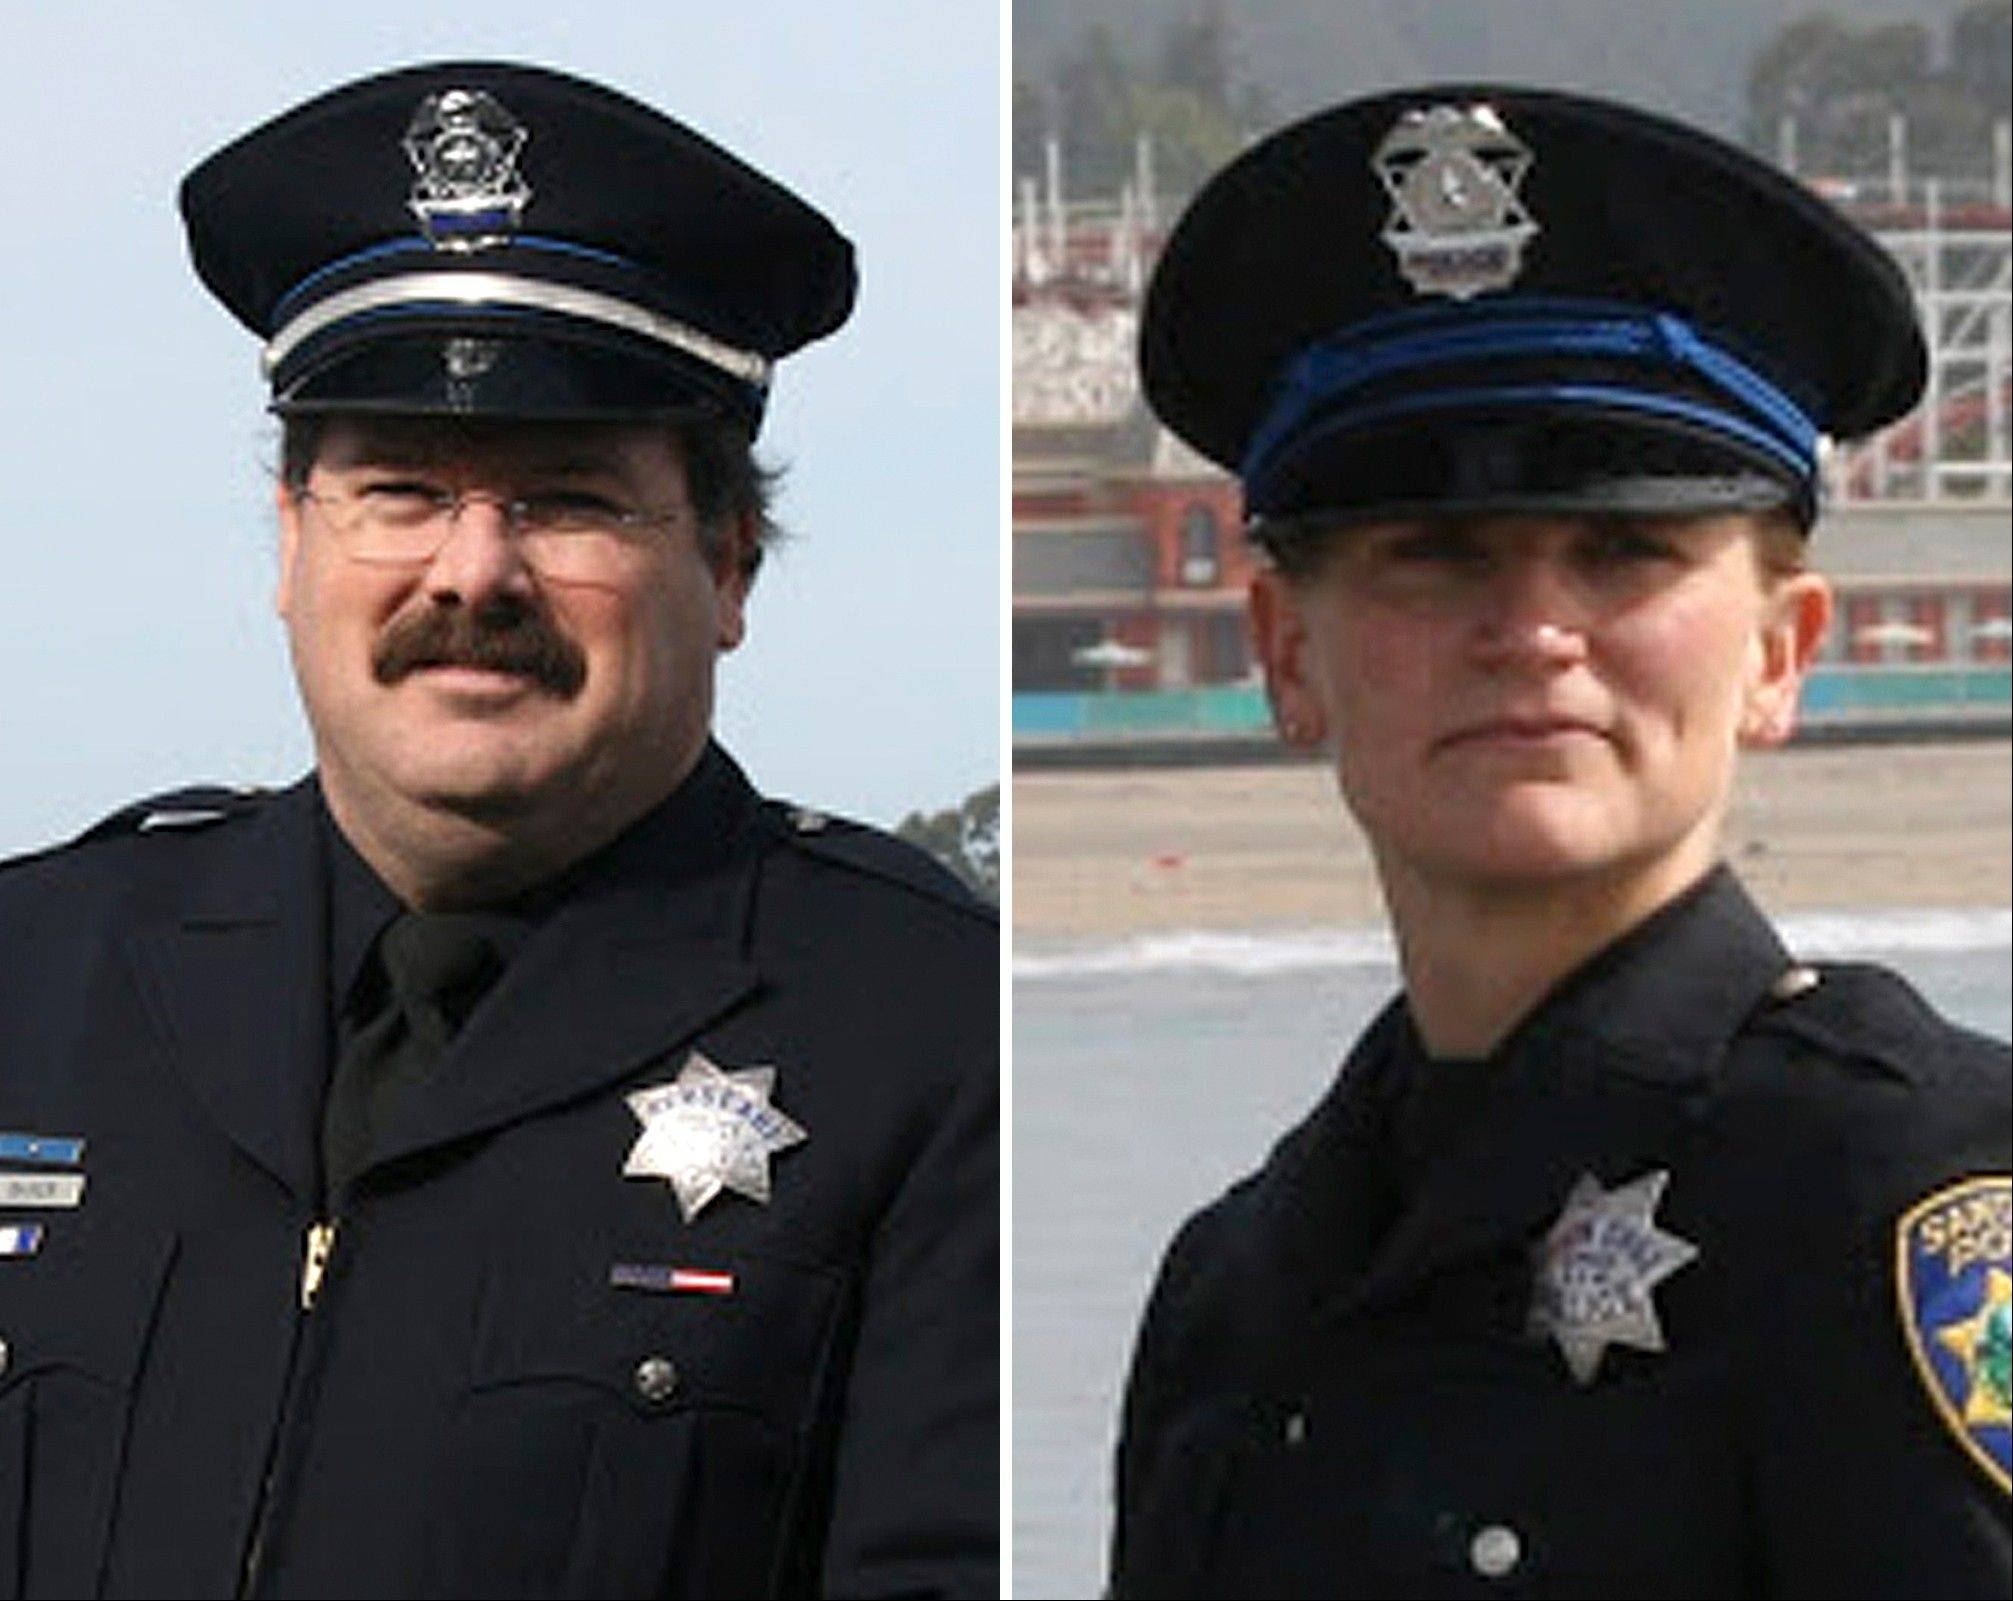 Santa Cruz police Sgt. Loran �Butch� Baker, left, and officer Elizabeth Butler were killed while responding to a sexual assault report Tuesday afternoon, Feb. 27, 2013 at the doorstep of a suspect who was chased down and killed half an hour later.